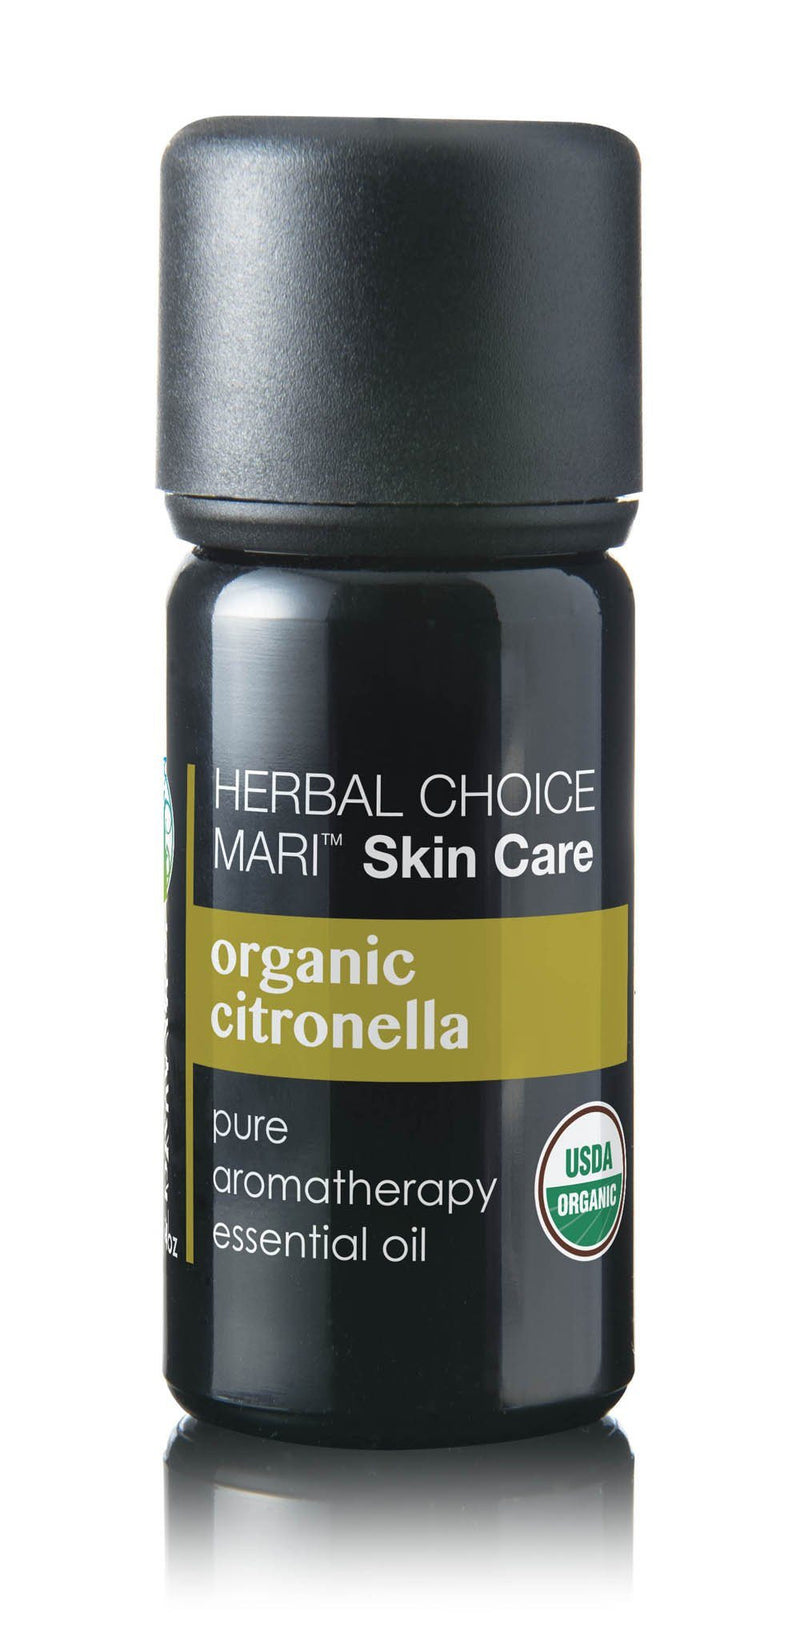 Herbal Choice Mari Organic Citronella Essential Oil; 0.3floz Glass - Herbal Choice Mari Organic Citronella Essential Oil; 0.3floz Glass - Herbal Choice Mari Organic Citronella Essential Oil; 0.3floz Glass